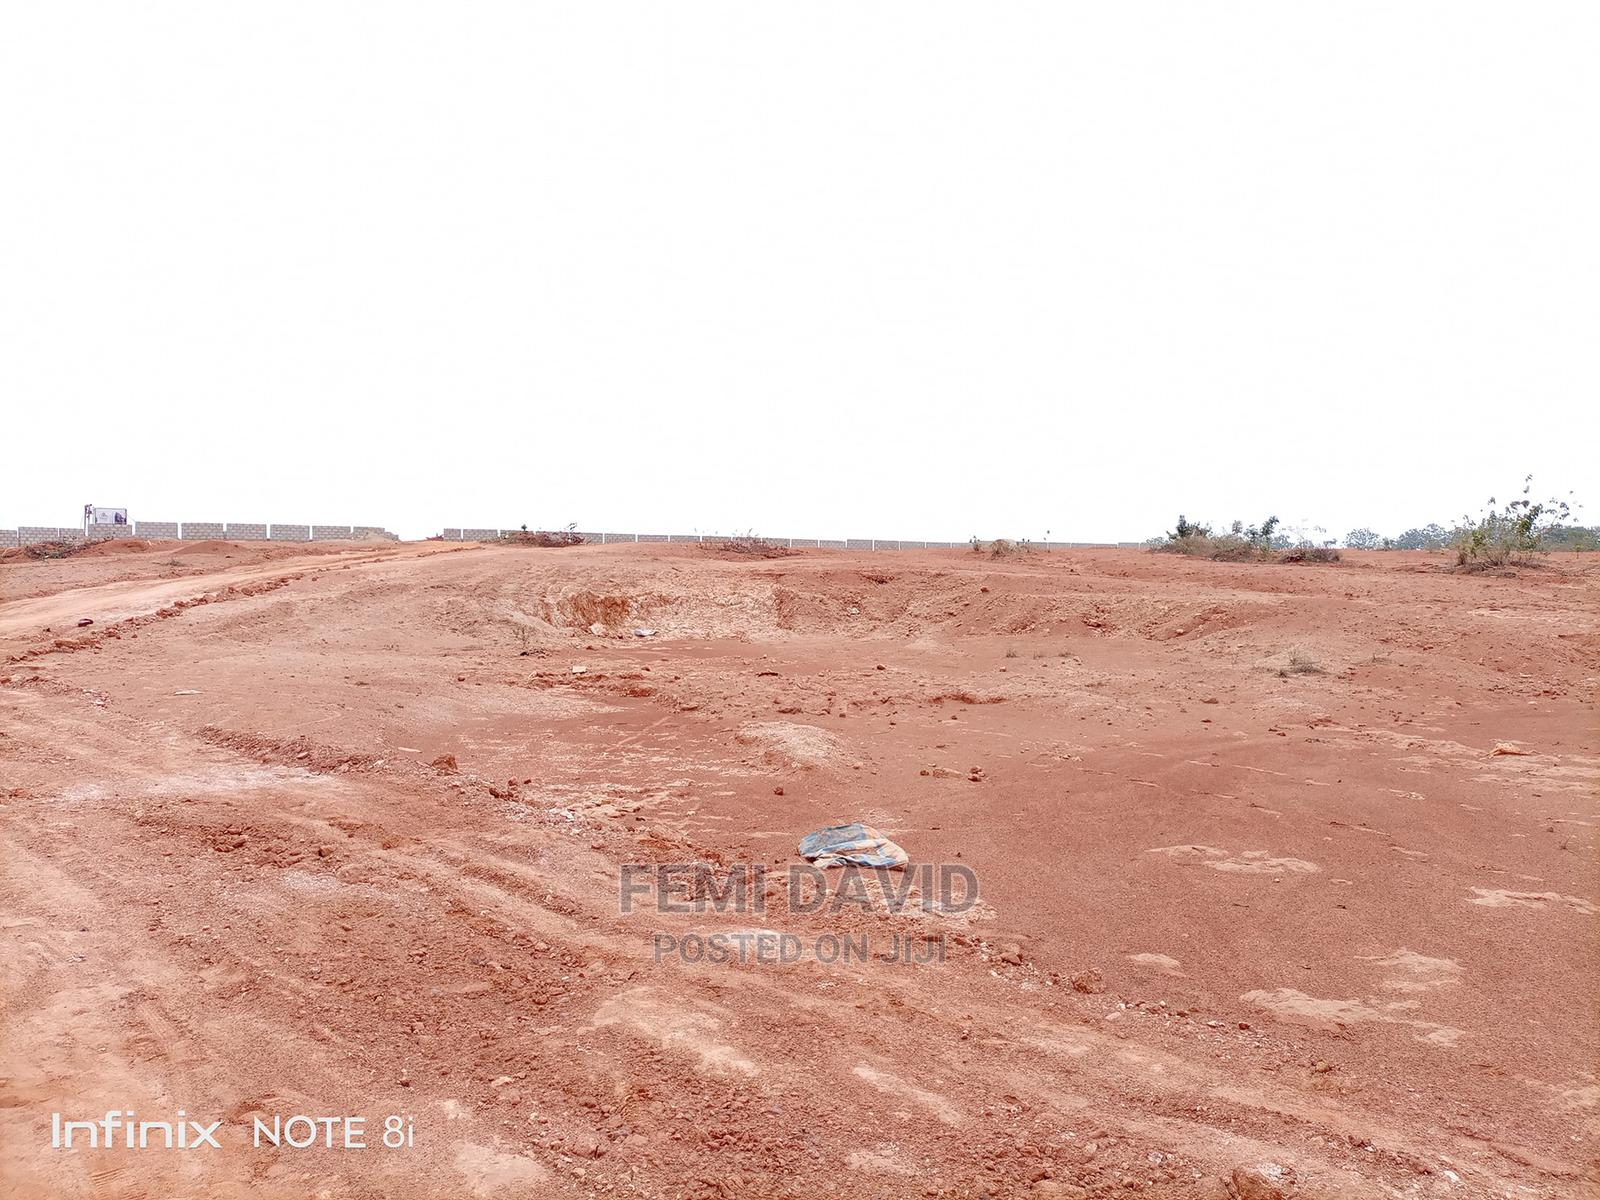 Residential/ Commercial Land For Sale!